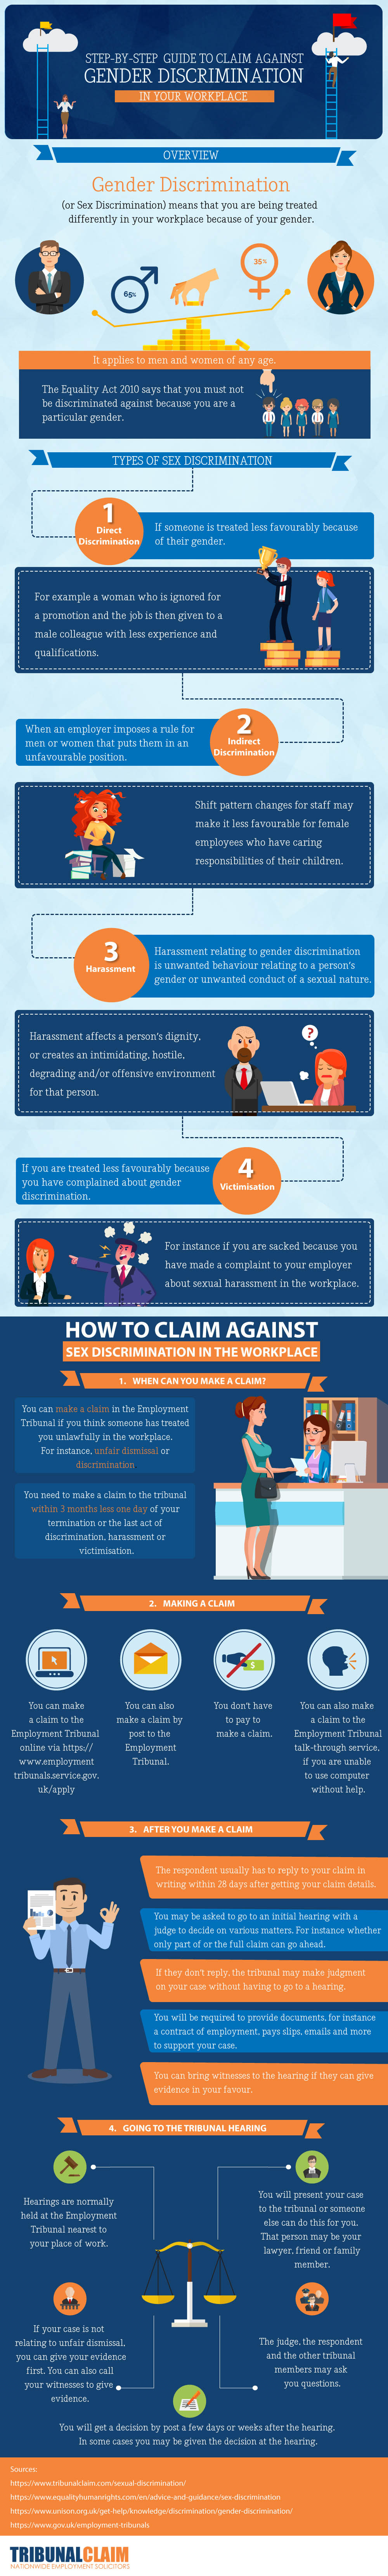 Concise Guide on How to Claim Against Workplace Gender Discrimination - Infographic